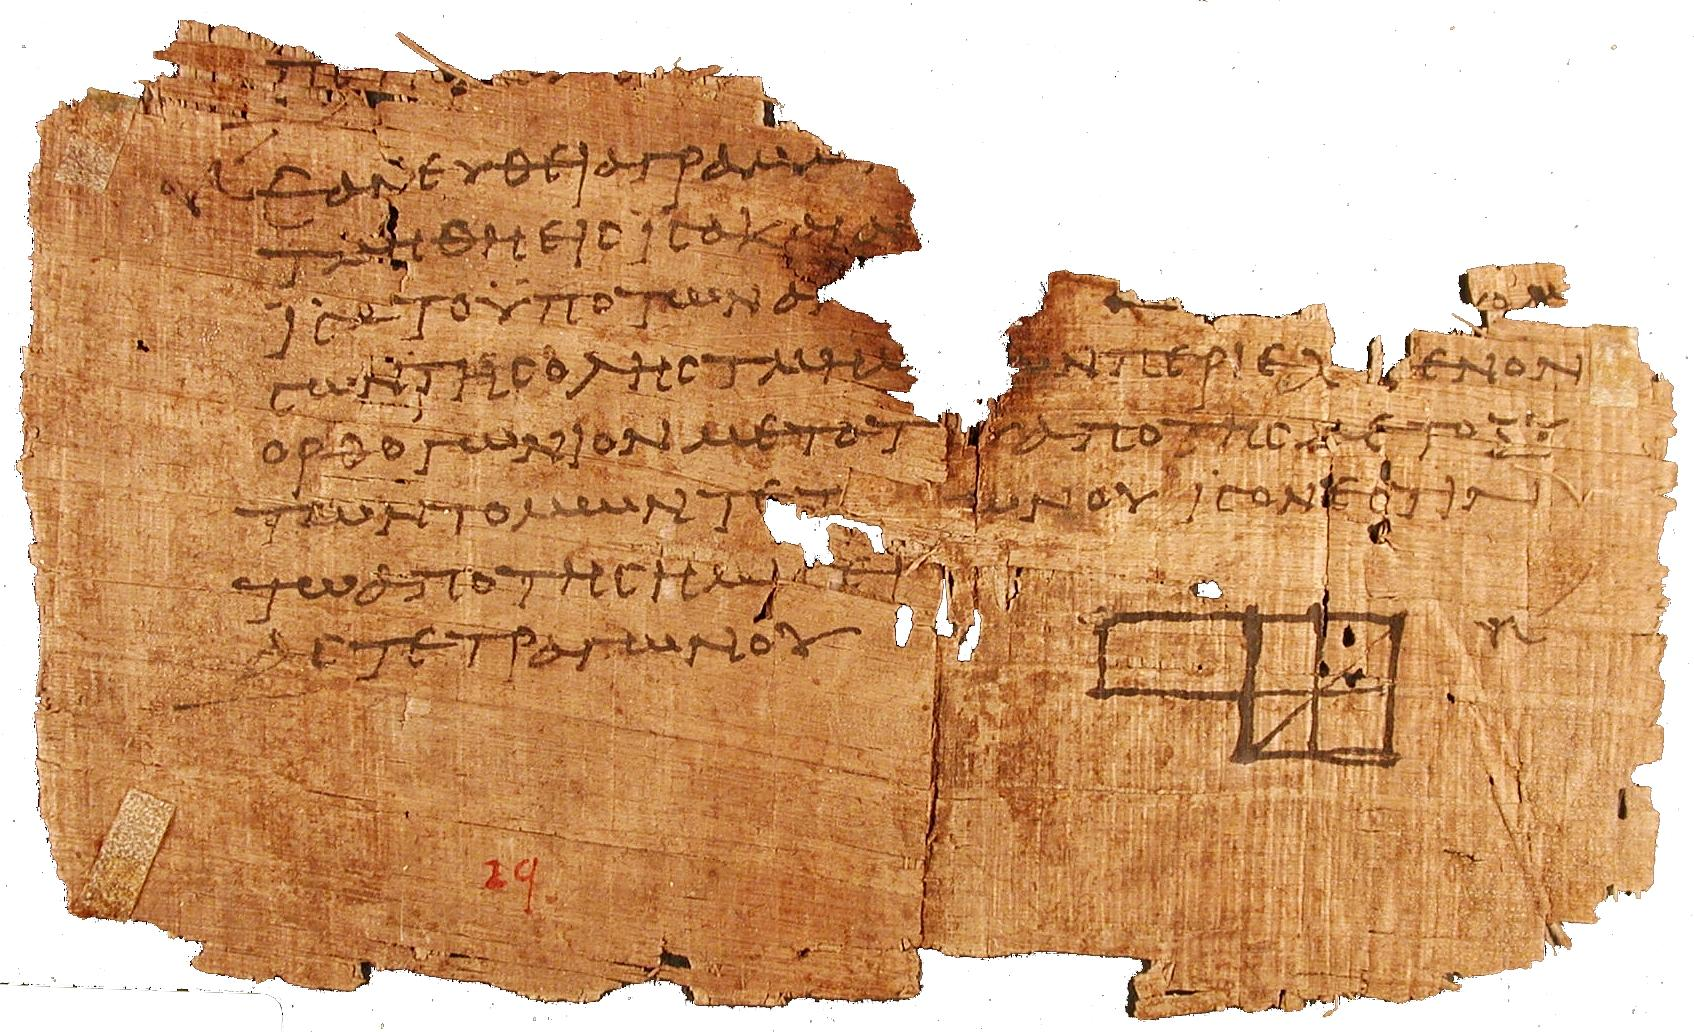 The oldest diagram from Euclid